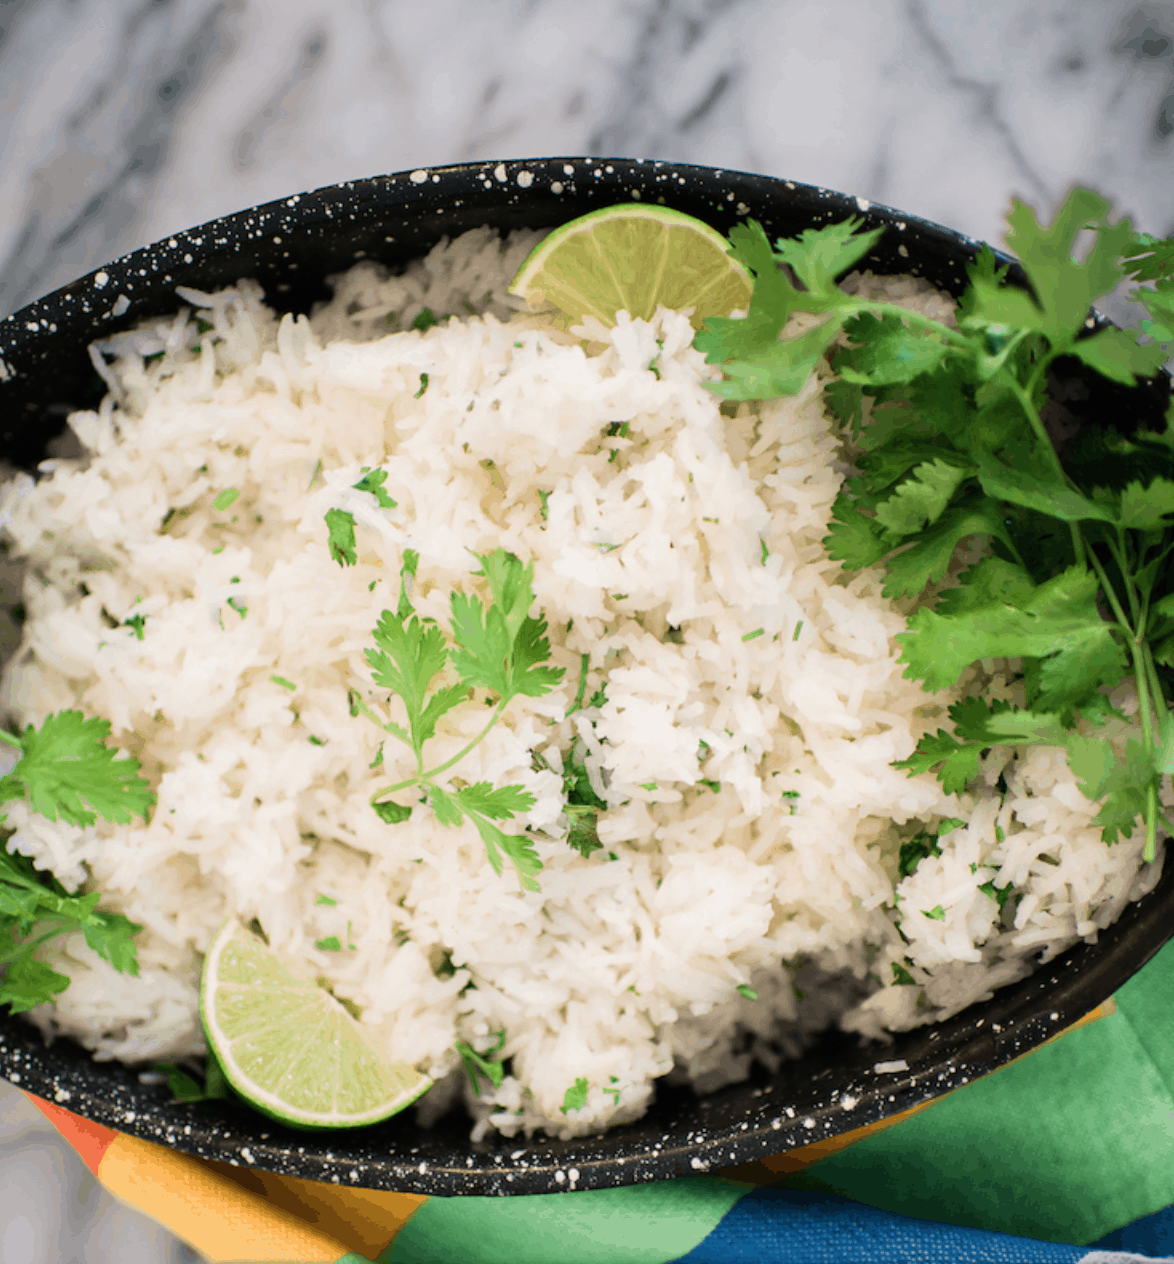 Cilantro Lime Rice in a black bowl.